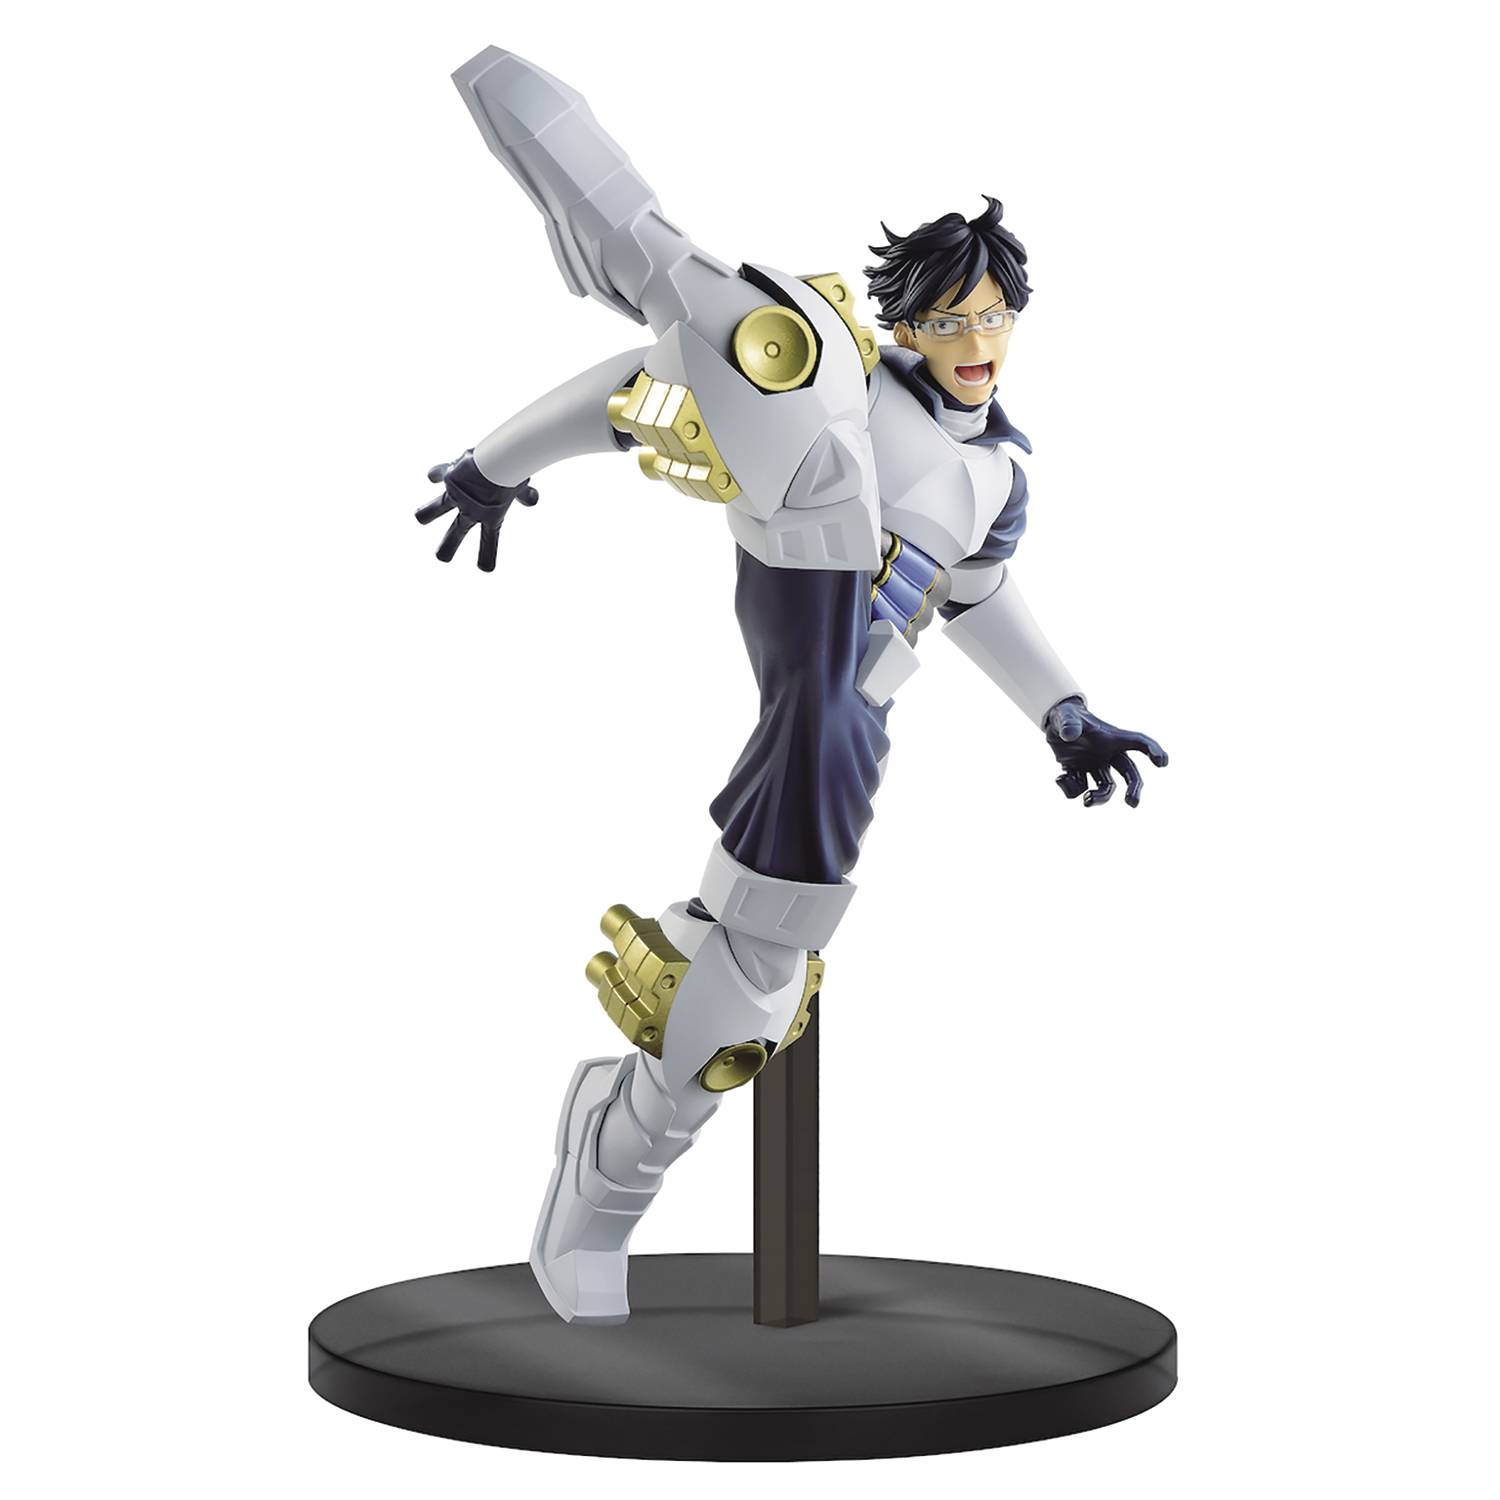 MY HERO ACADEMIA THE AMAZING HEROES V10 TENYA IIDA FIG